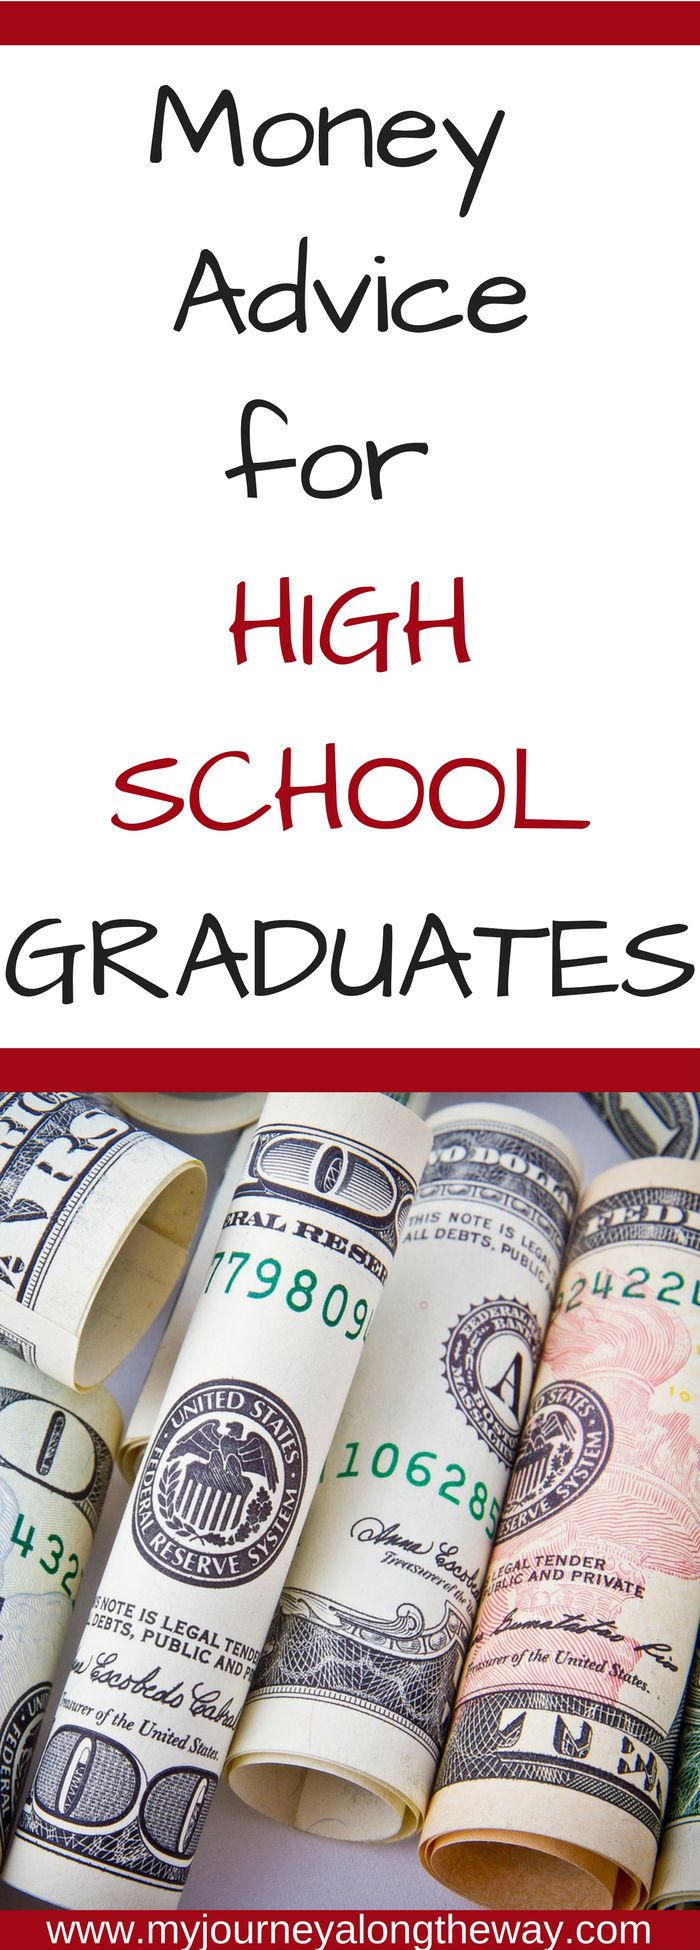 Money advice for High School Graduates - concise and helpful advice for students graduating from high school | Financial Advice | Student Loans | College | Work full time | Budgeting | Money